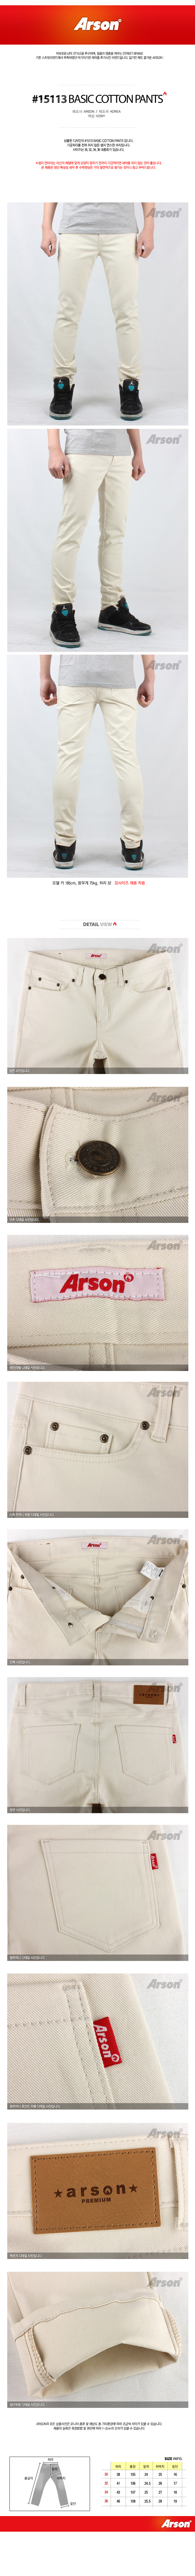 [ ARSON ] [Arson] ARSON GENUINE/15113 BASIC COTTON PANTS (IVORY)/men\'s cotton pants/cotton pants/ARSON cotton pants